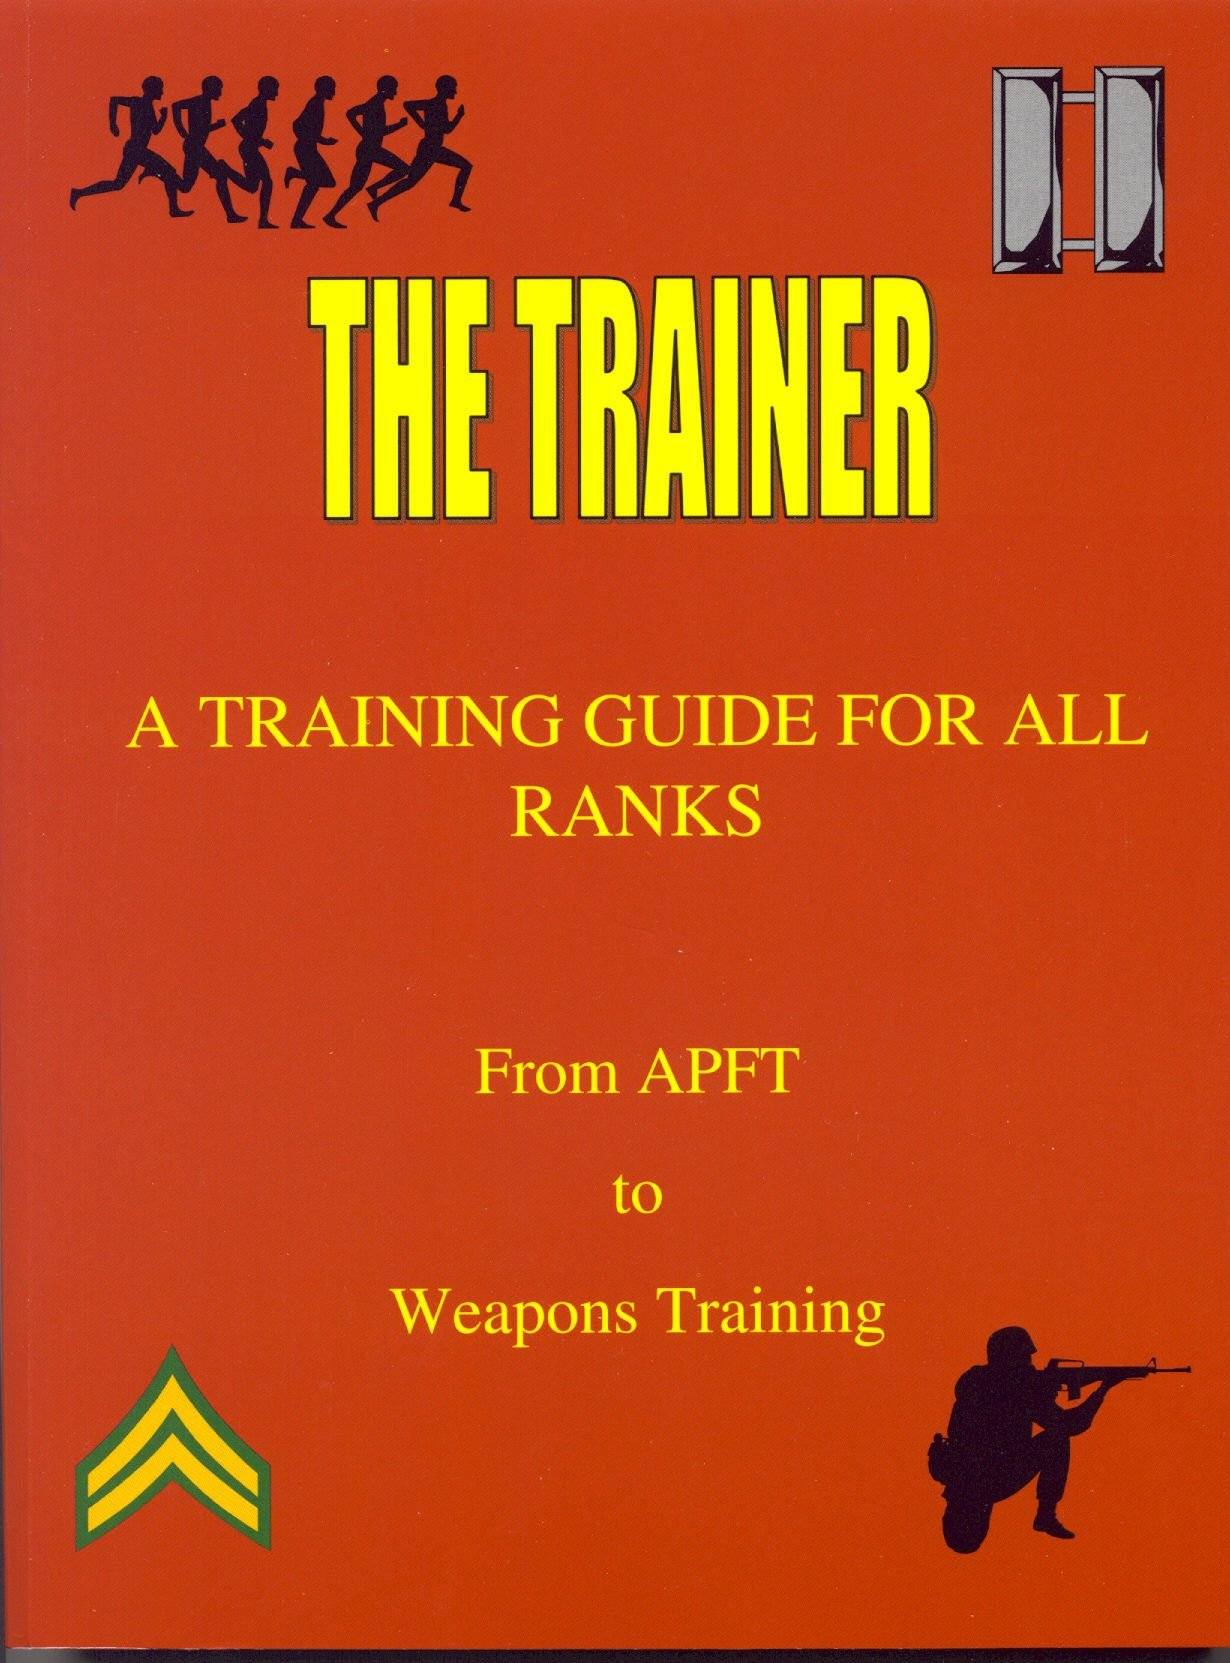 Download The Trainer a Training Guide for All Ranks (From APFT to Weapons Training) pdf